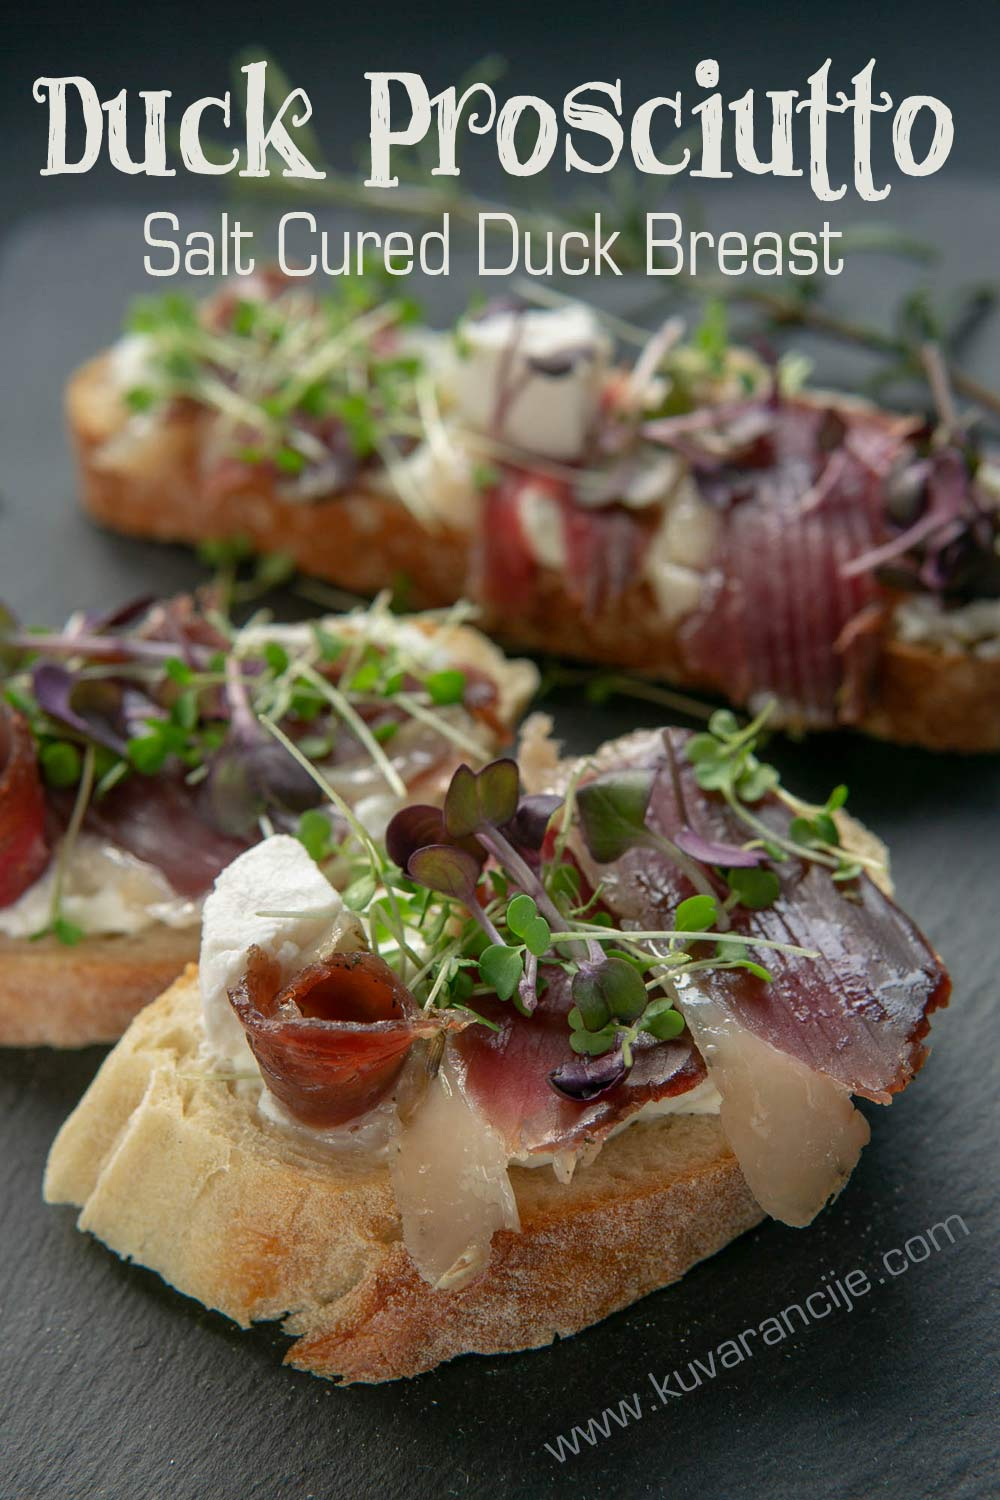 Duck Prosciutto Salt Cured Duck Breast